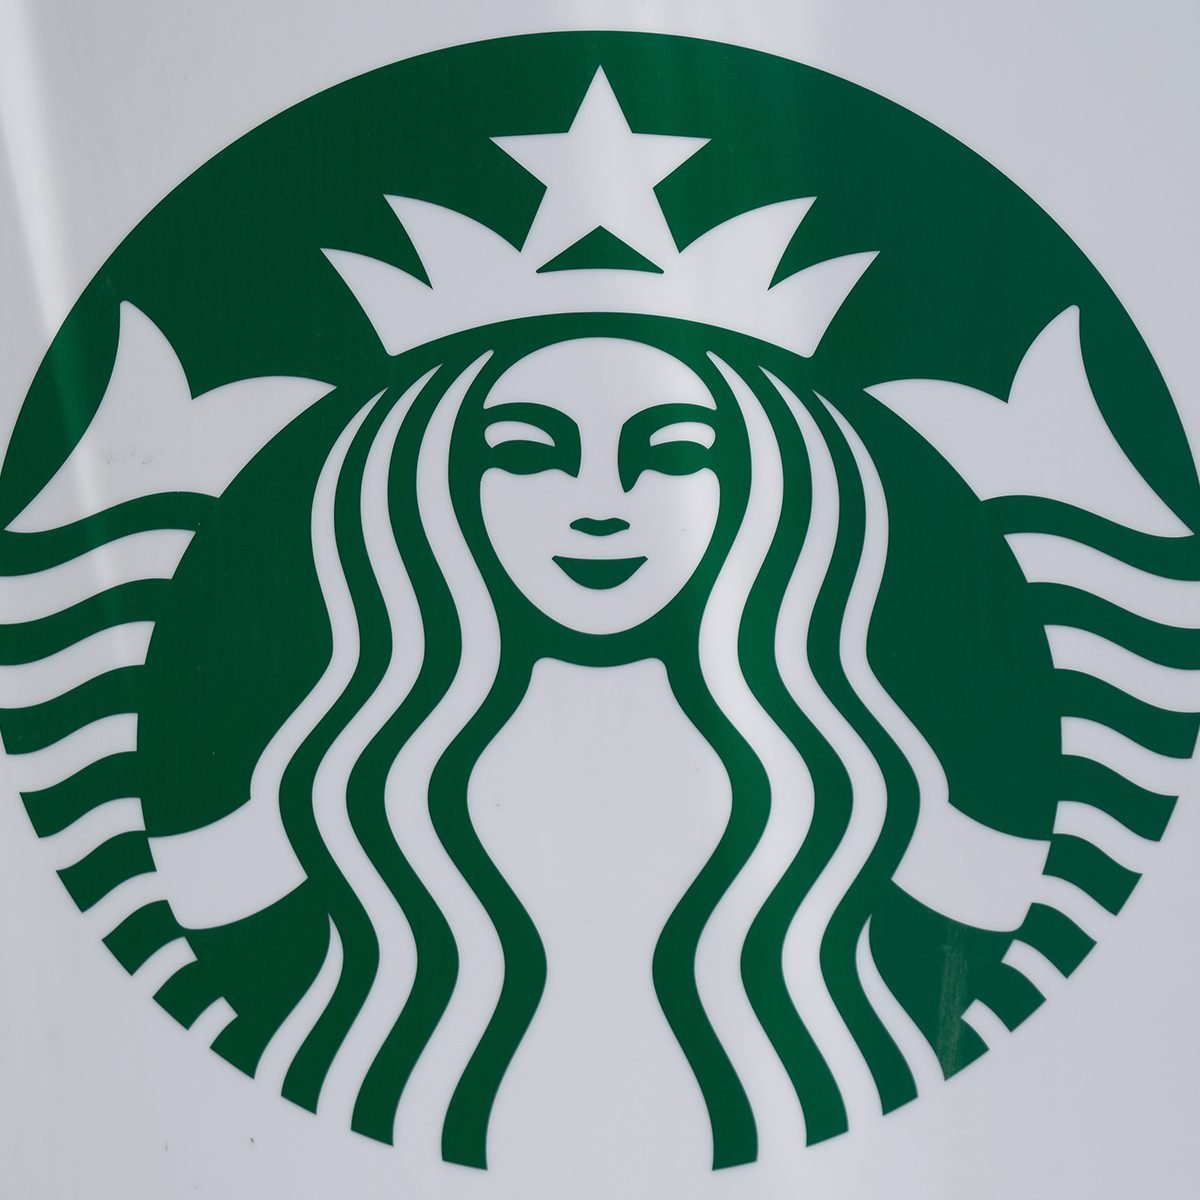 THE HAGUE, NETHERLANDS - JUNE 24: A logo of Starbucks Corp. is displayed outside the coffee chain's store on June 24, 2020 in The Hague, Netherlands. (Photo by Yuriko Nakao/Getty Images)